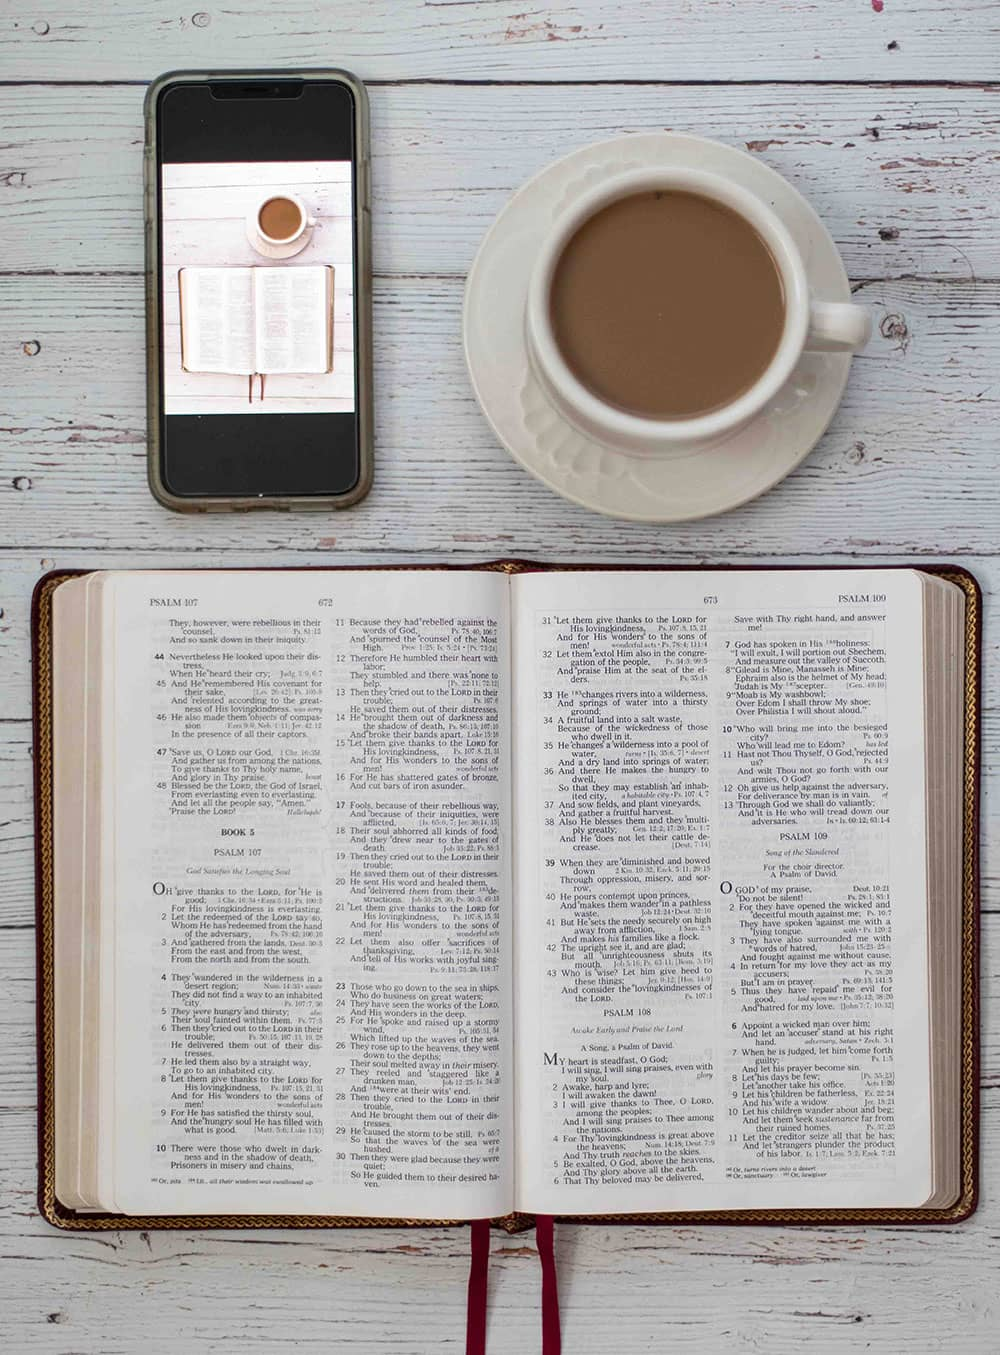 Sign Up for Daily Lent Devotions